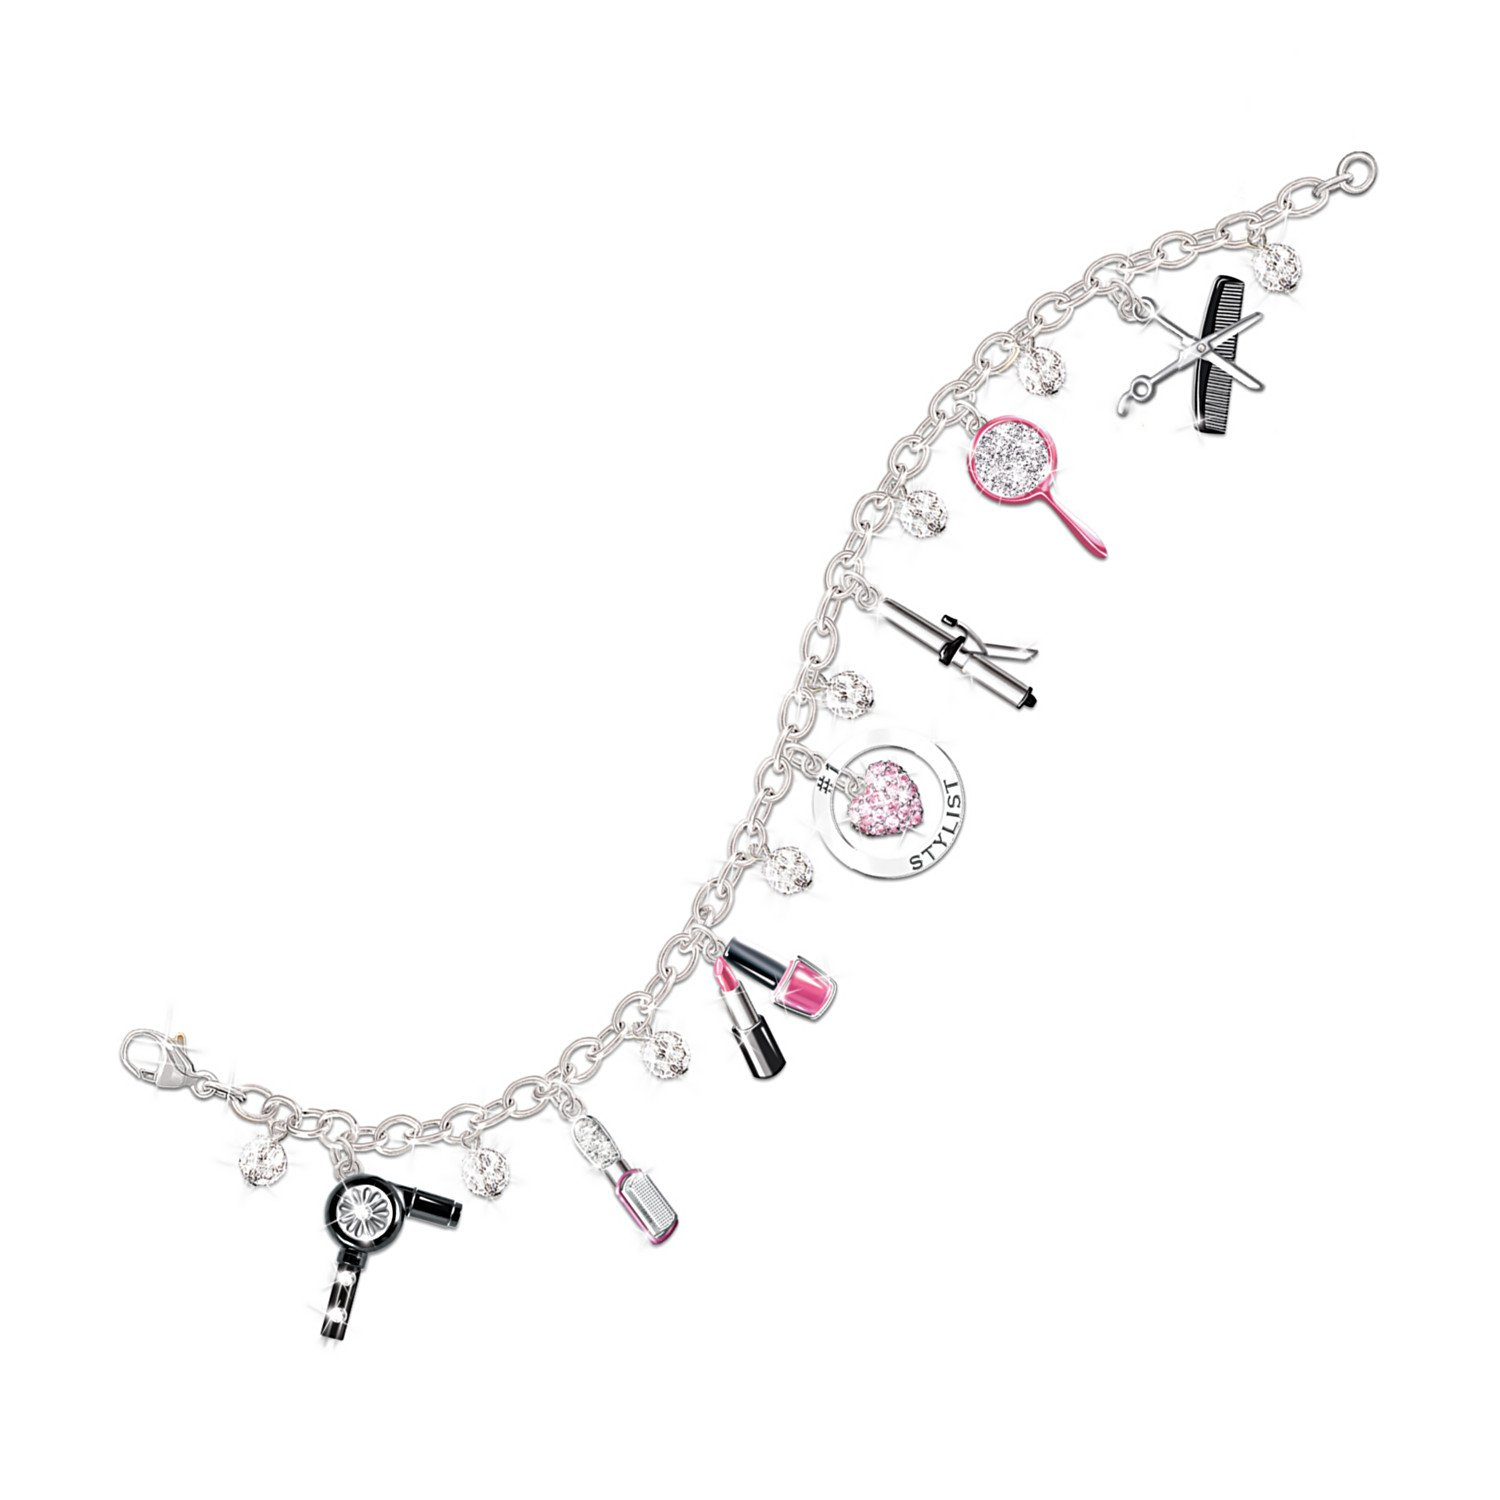 Show Your Style Fashion Sterling Silver-Plated Charm Bracelet: Unique Gift For Her by The Bradford Exchange